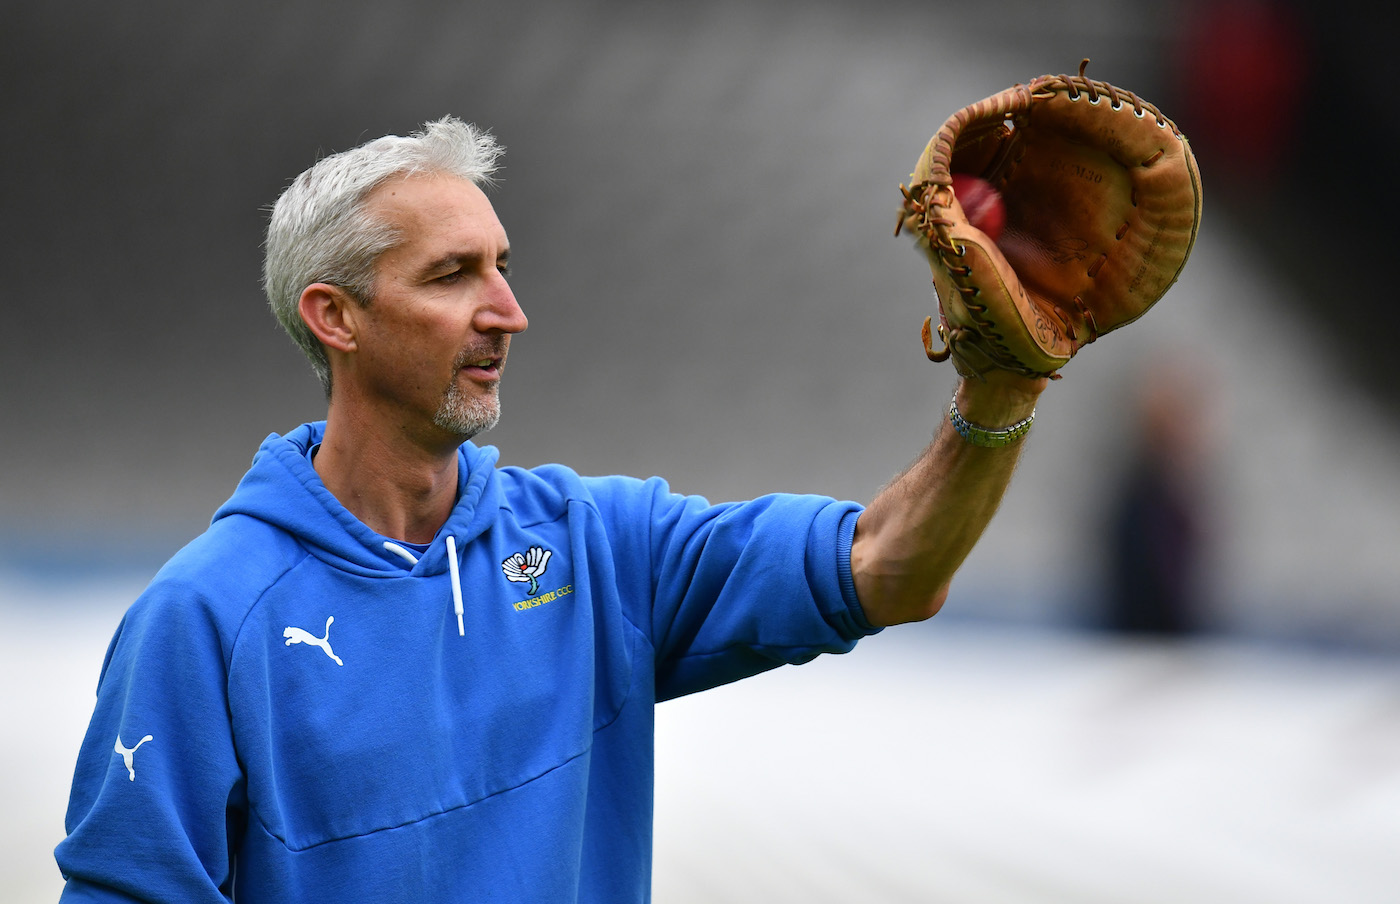 Leather rebel: Jason Gillespie is a staunch vegan, so much so that he has kept mending his leather catching mitt for six years to avoid buying another one